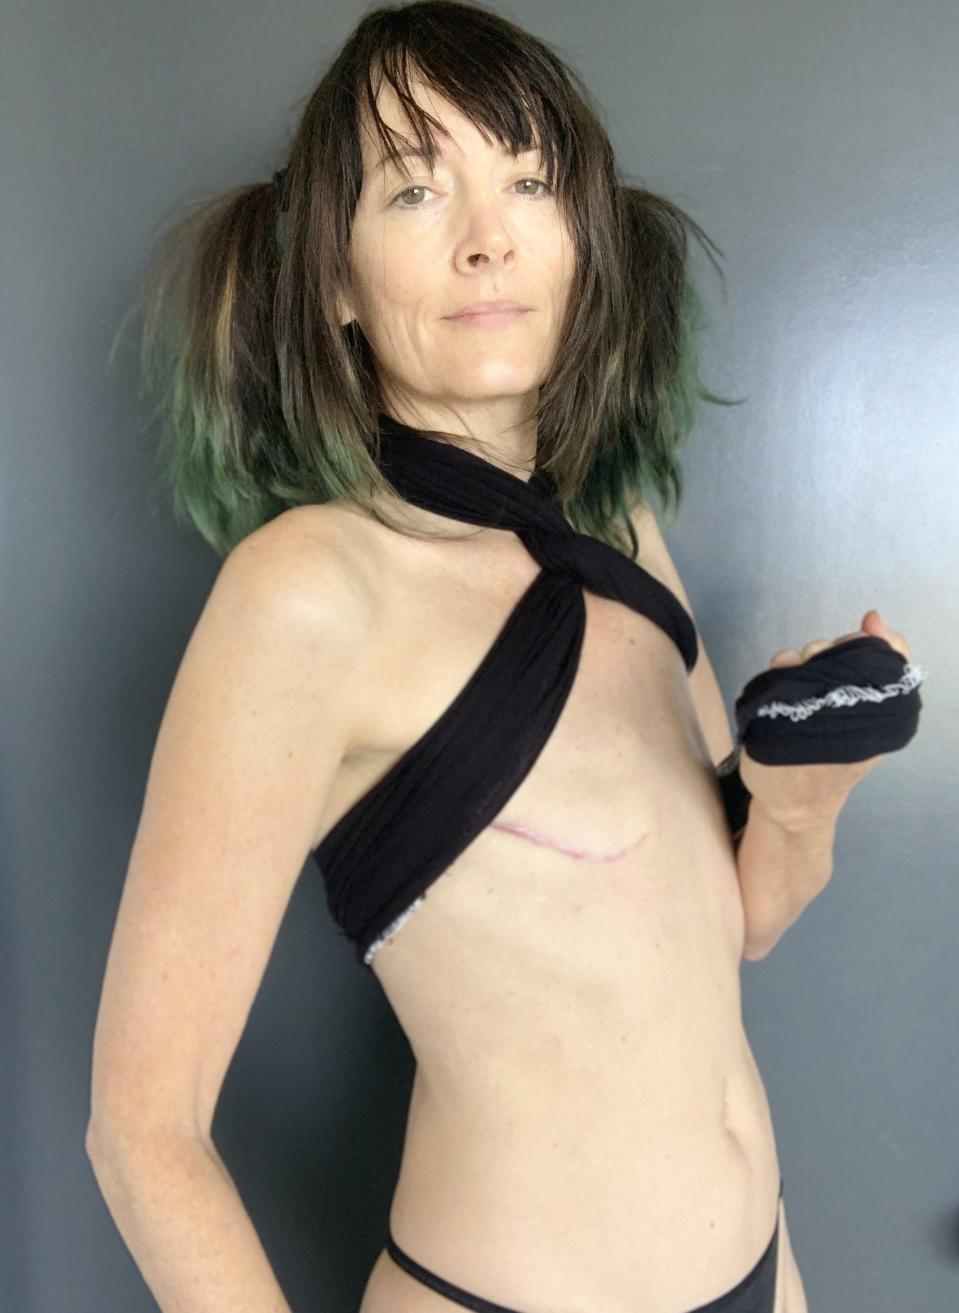 Writer, advocate and breast cancer survivor Renee Ridgeley became a flat activist after first opting for reconstruction and later, after health complications, having her implants removed. (Photo courtesy Renee Ridgeley)